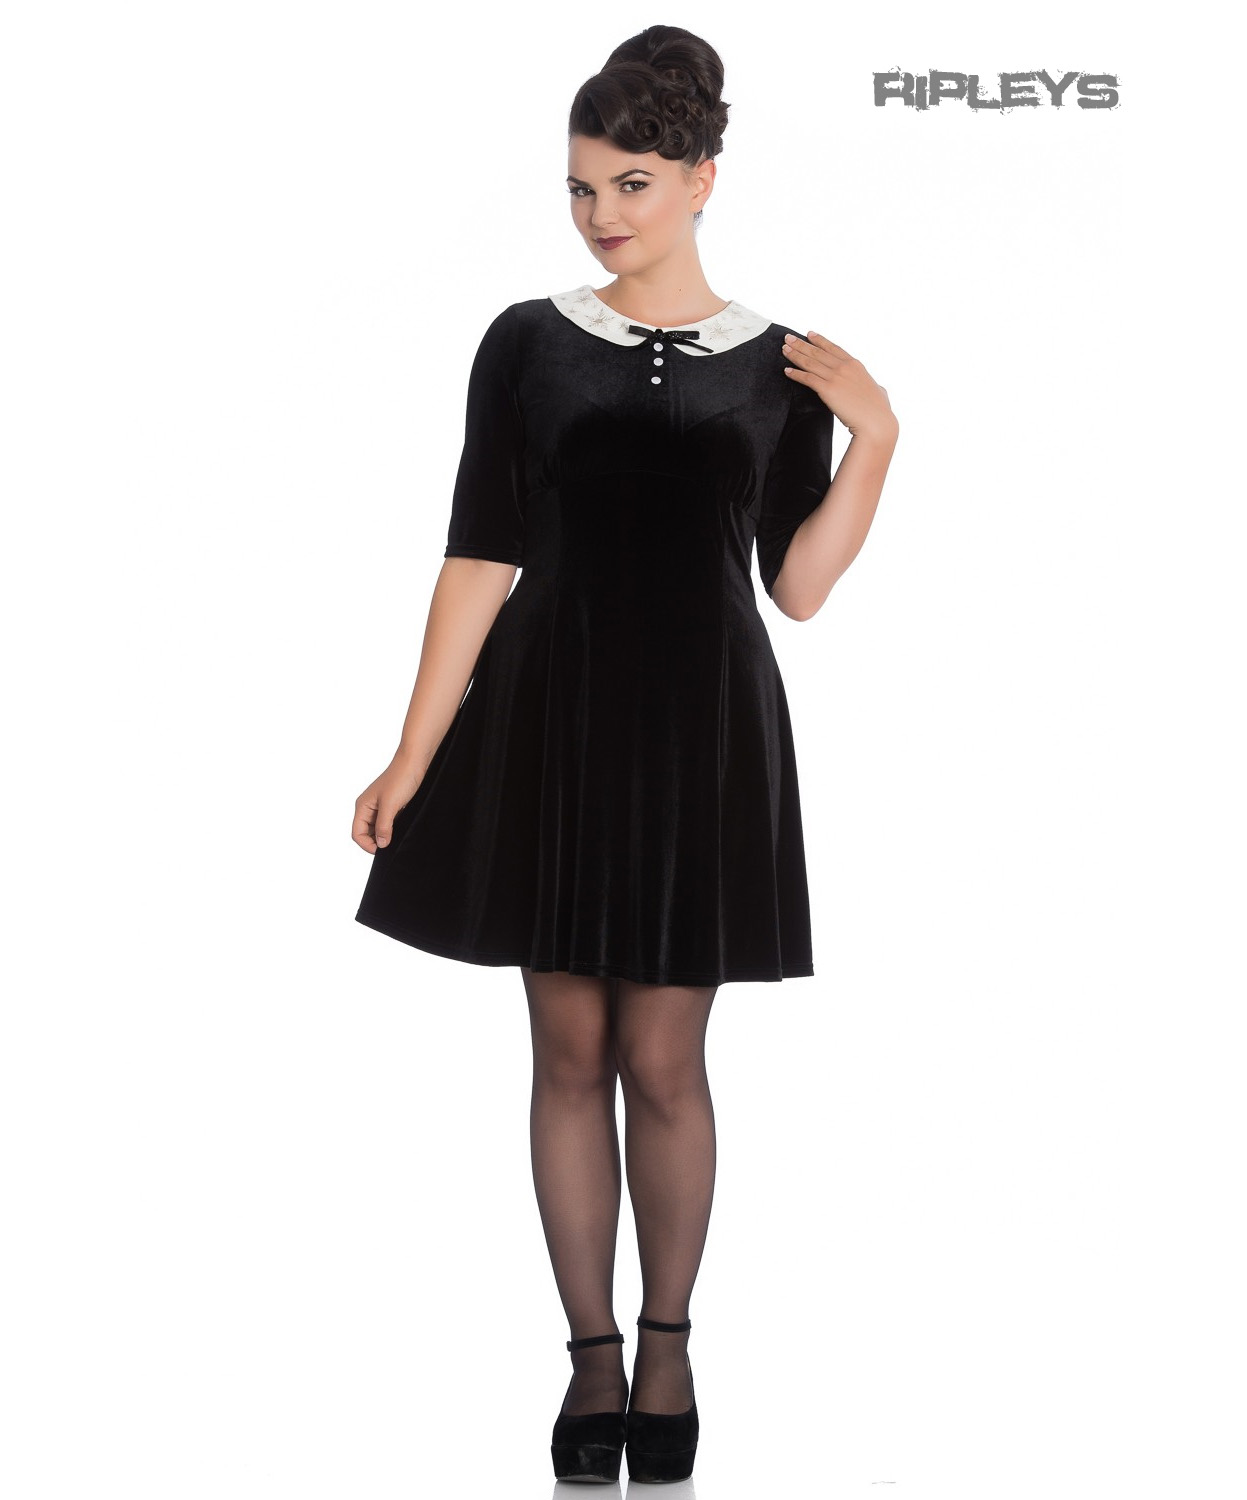 Hell-Bunny-Mini-Skater-Dress-Festive-Christmas-SNOWY-Black-Snowflakes-All-Sizes thumbnail 18